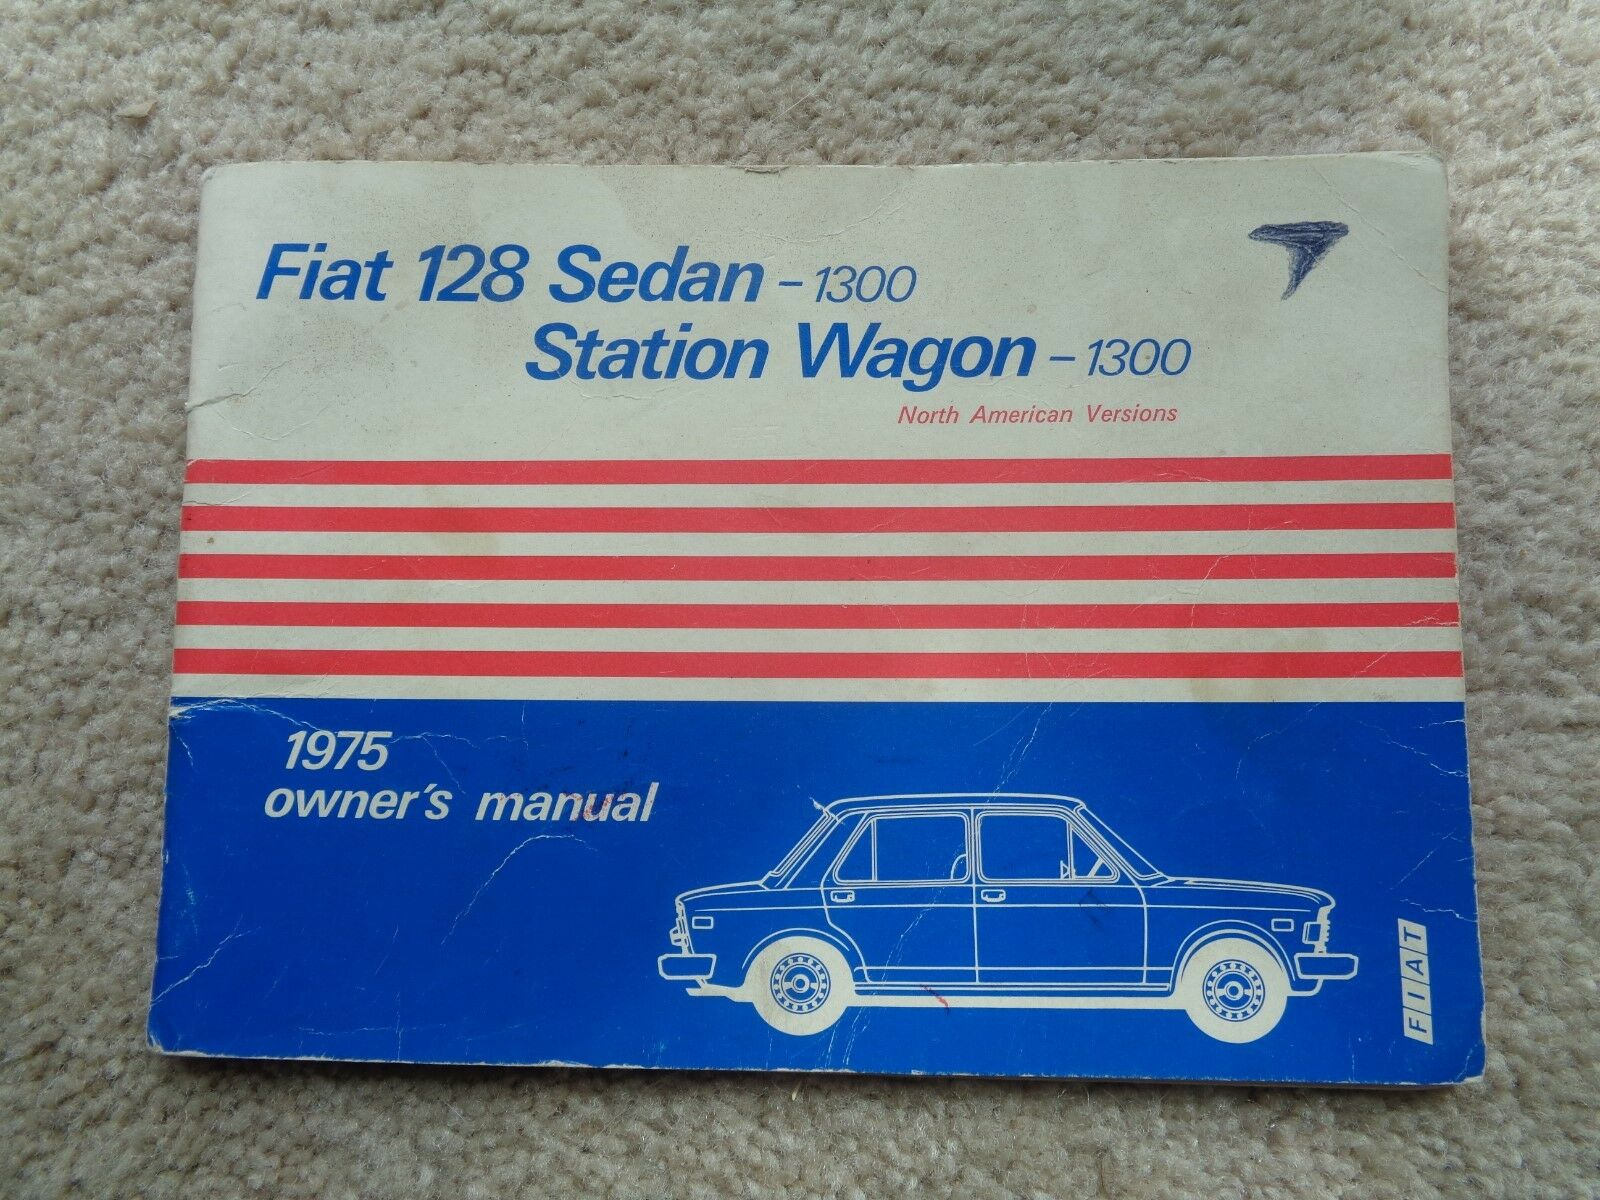 1975 Fiat 128 Sedan 1300 Station Wagon 1300 - Owners Manual - Original 1 of  4Only 1 available ...